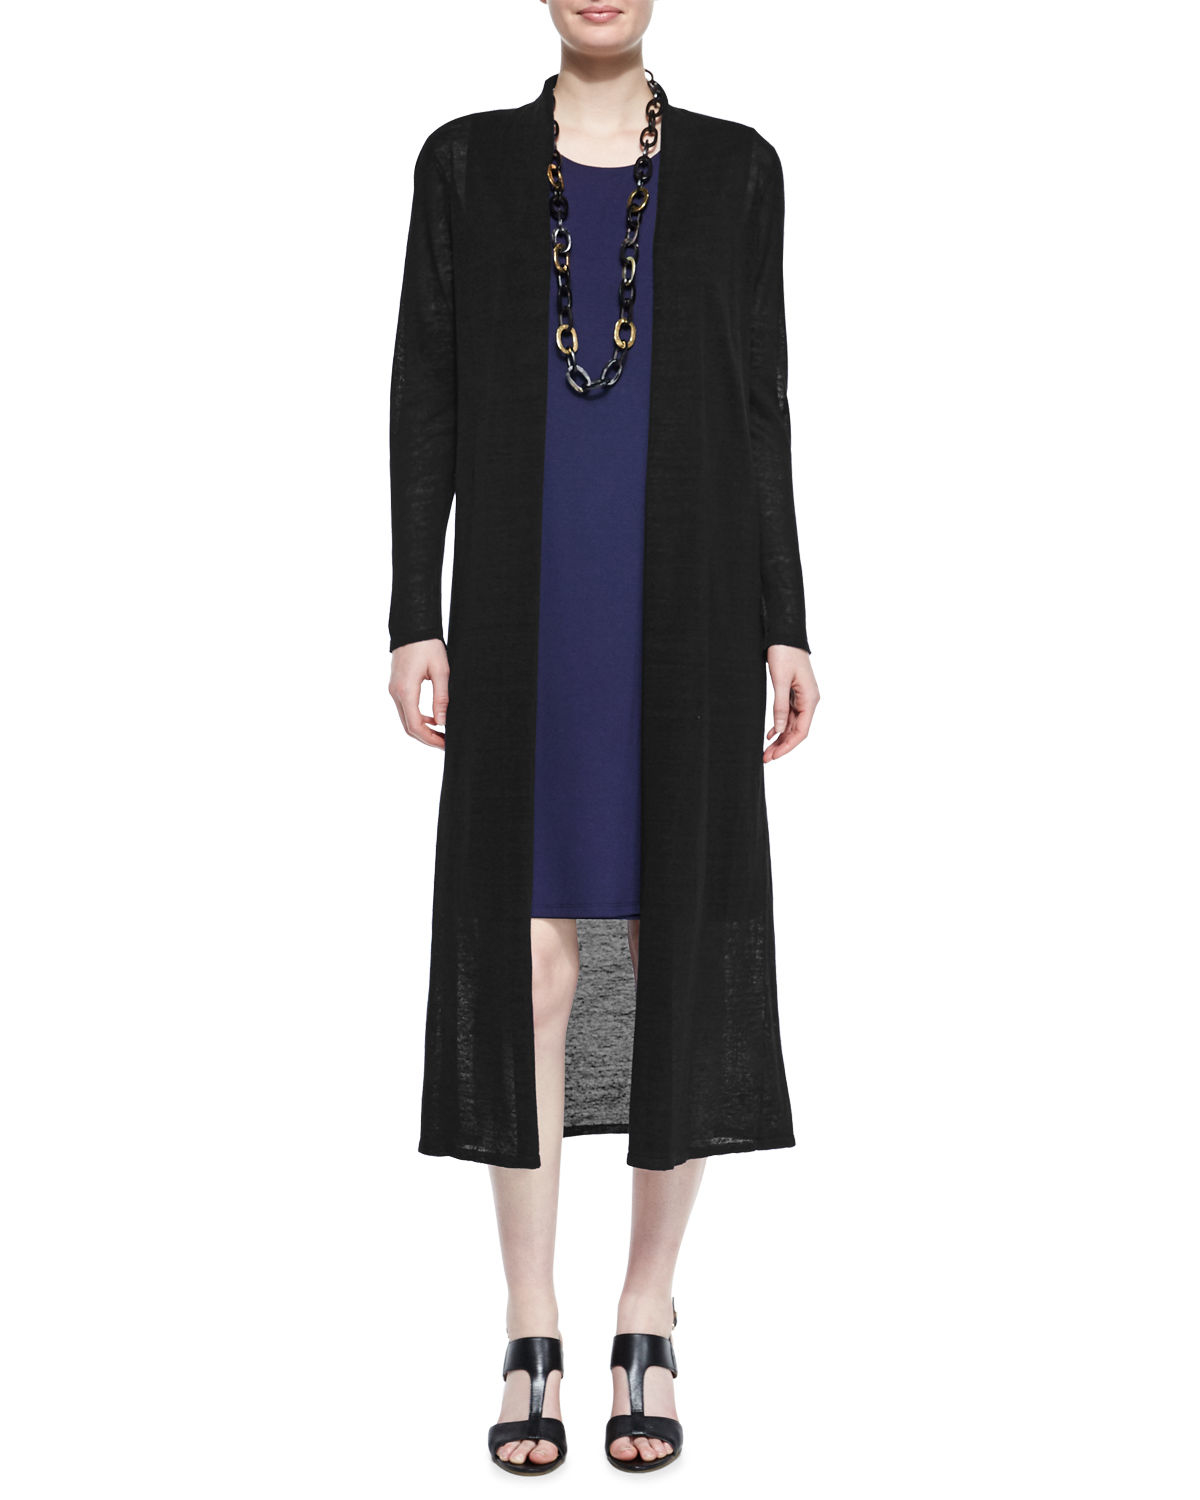 Eileen fisher Extra-long Cardigan in Black | Lyst